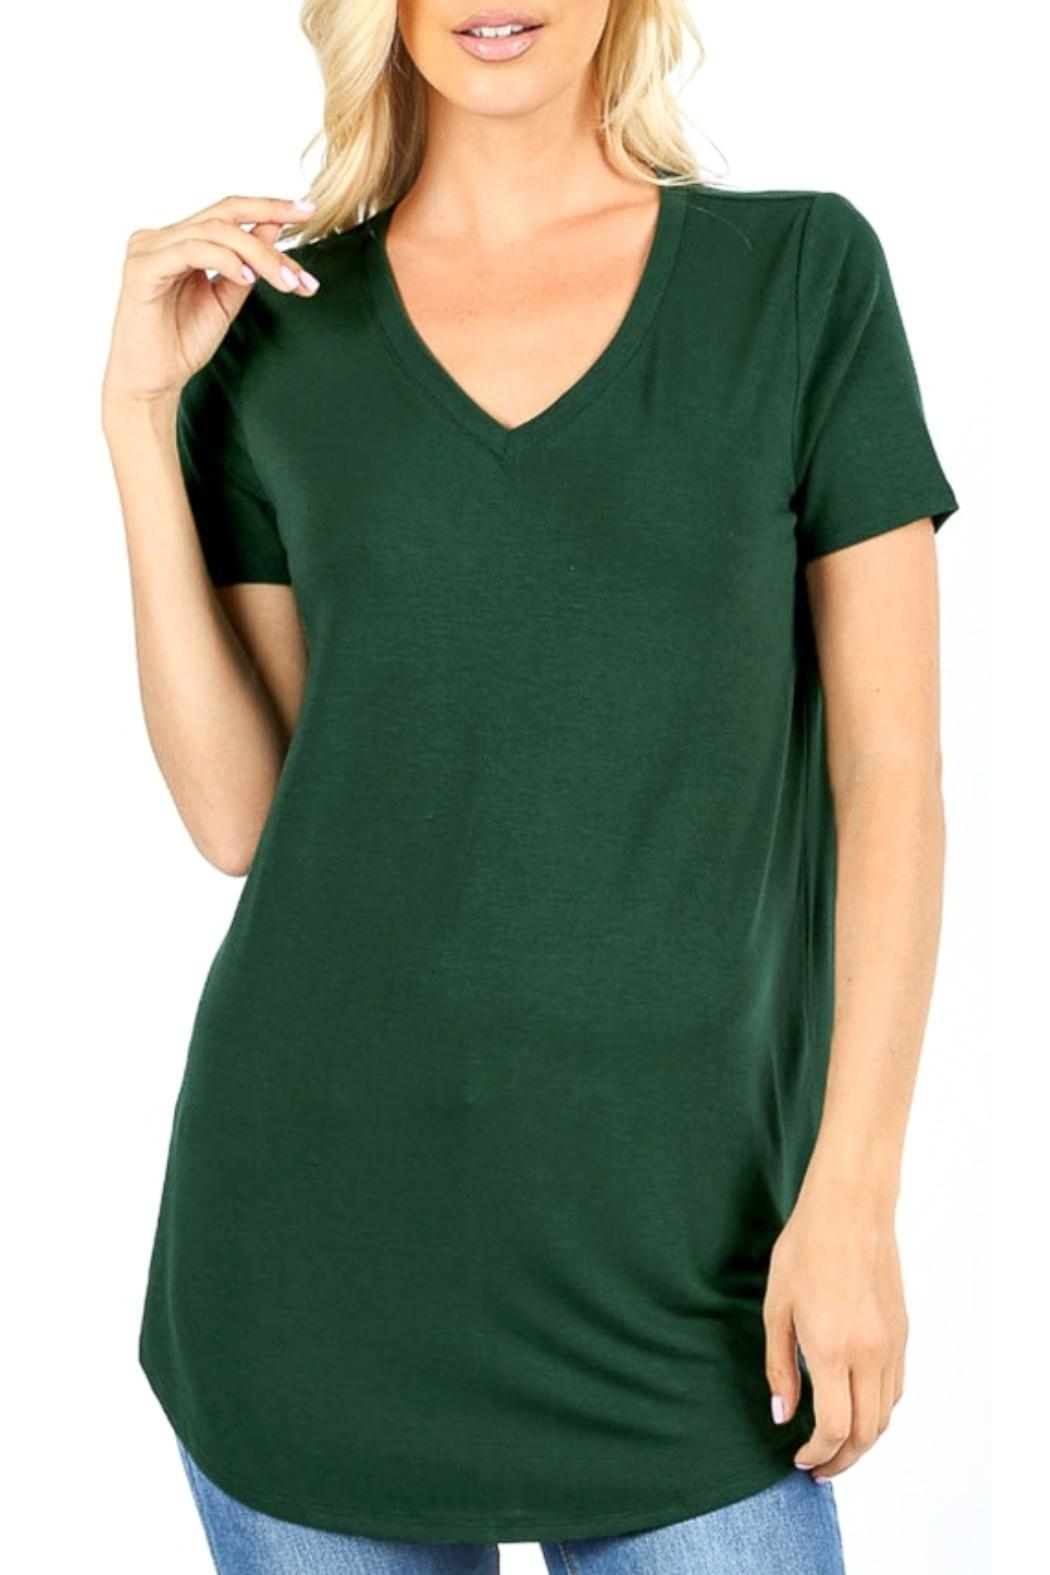 Zenana Outfitters V-Neck Tee-Hunter Green - Main Image